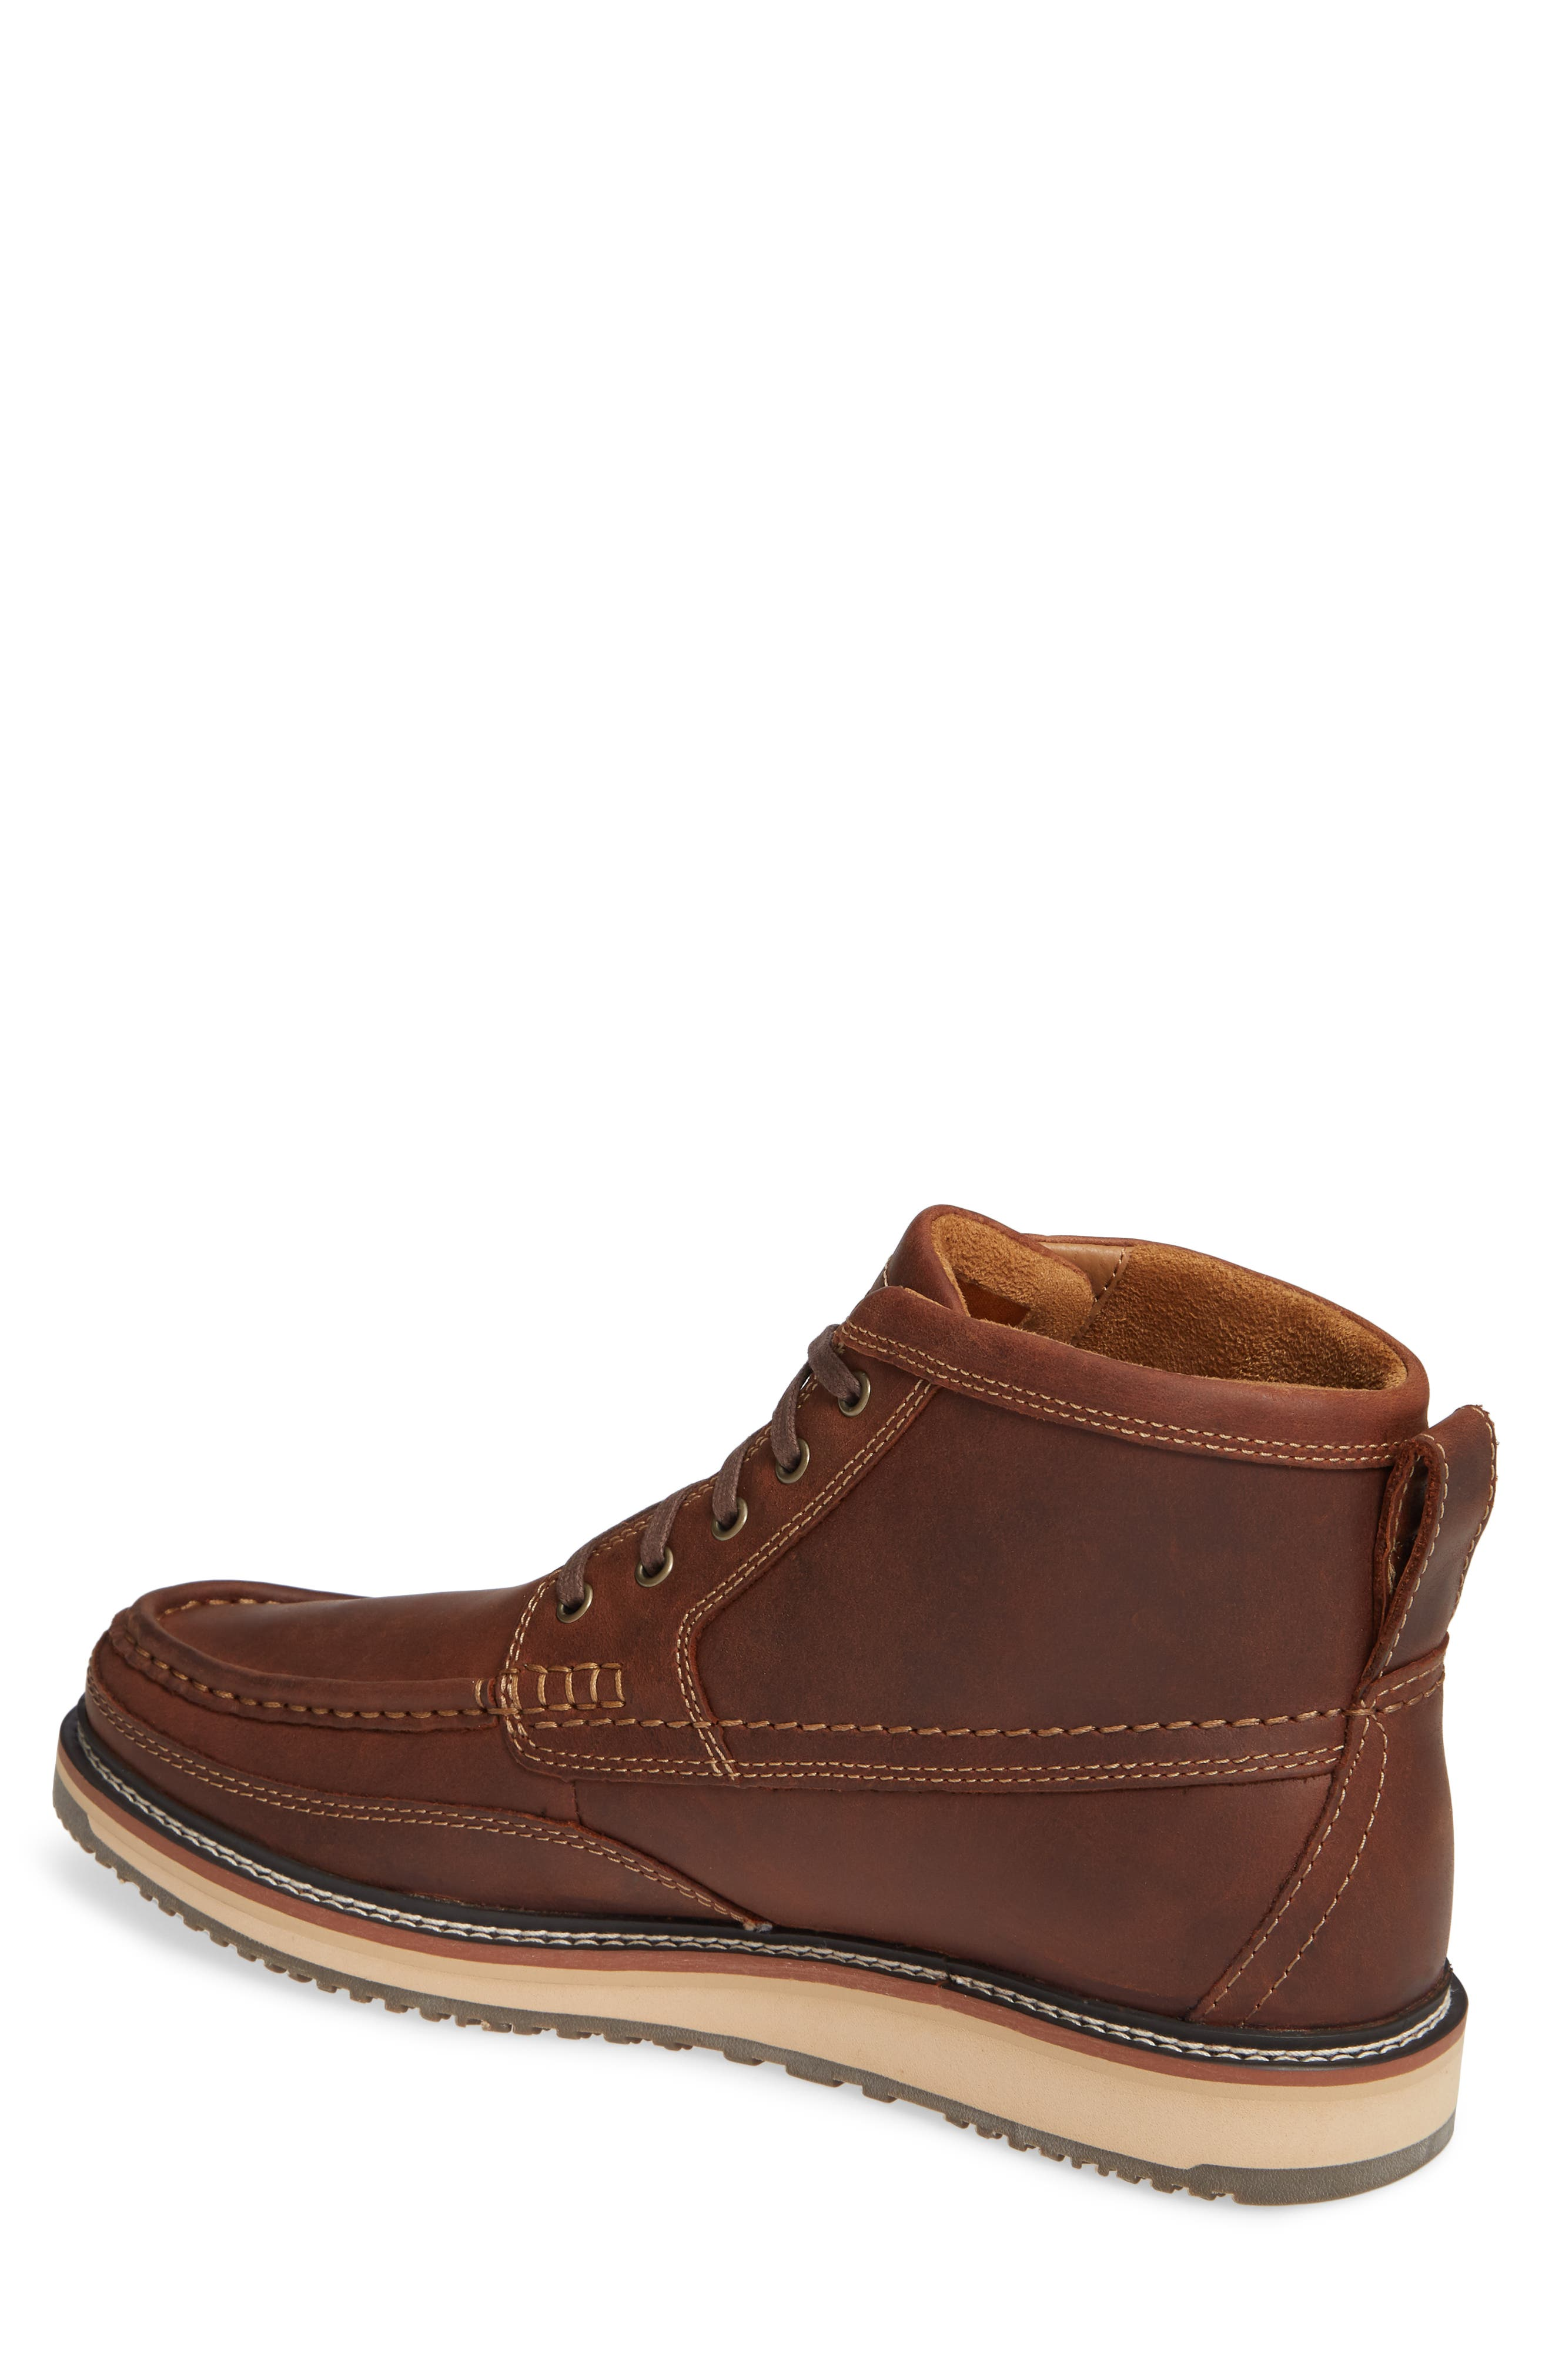 'Lookout' Moc Toe Boot,                             Alternate thumbnail 2, color,                             FOOTHILL BROWN LEATHER